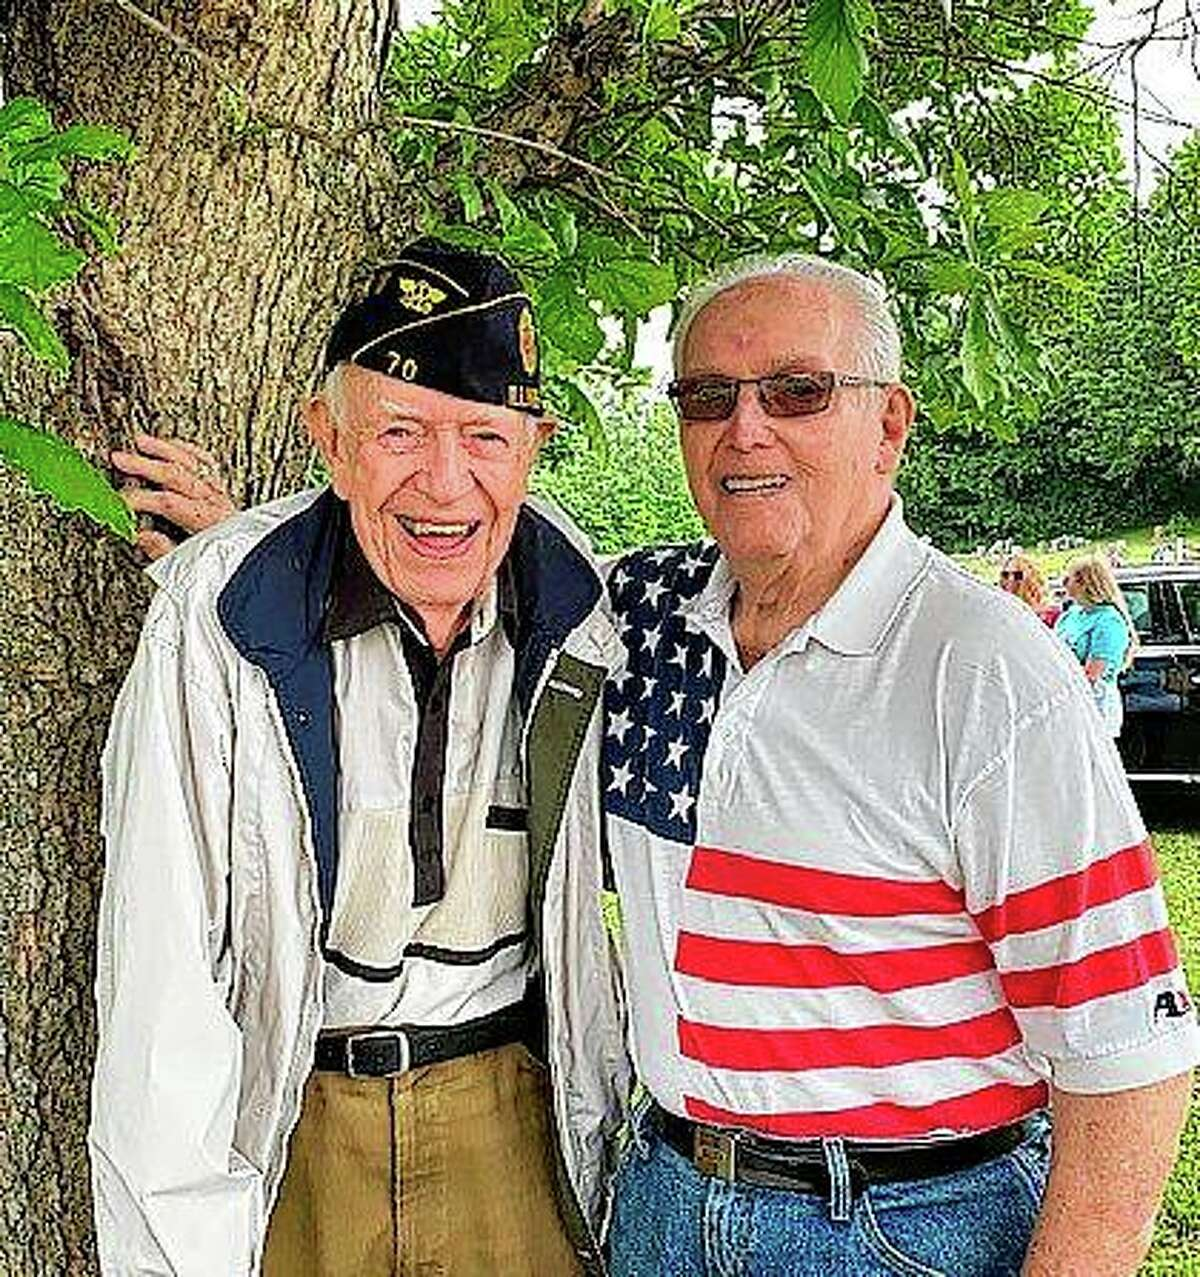 John Neece (left) and Bill Martin participate Monday in a Memorial Day service in White Hall. Neece, 99, and Martin, who will be 97 in July, are World War II veterans.